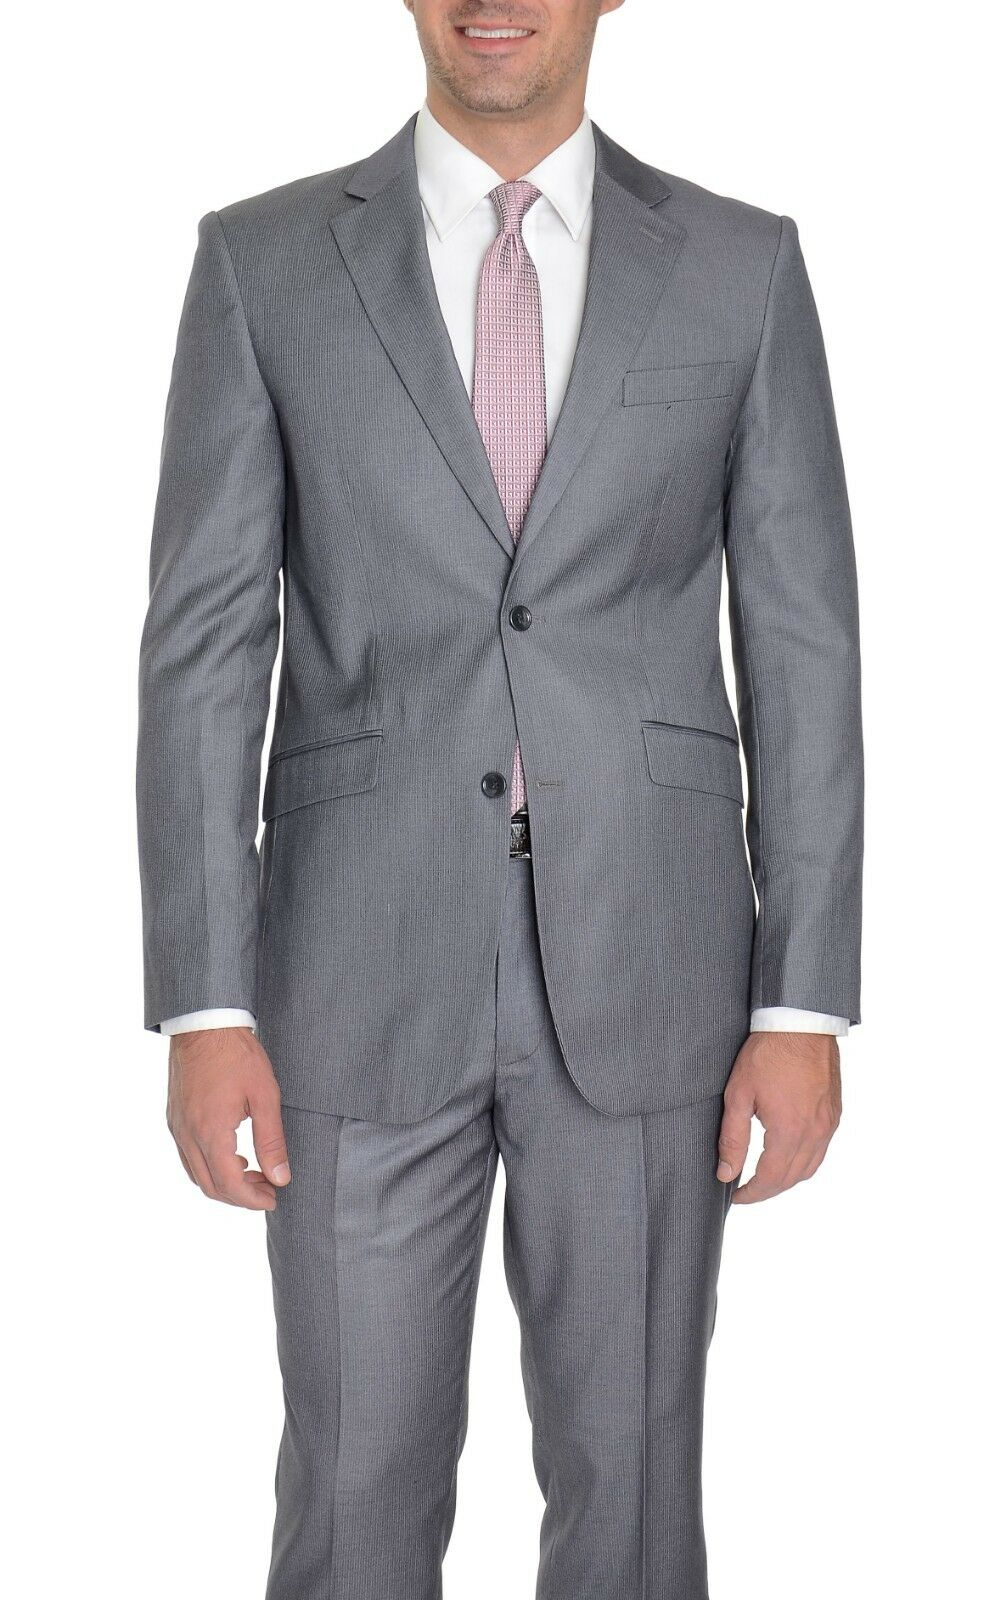 399 Gulliano Couture Modern Fit grau Pinstriped Two Button Suit 46R 38W